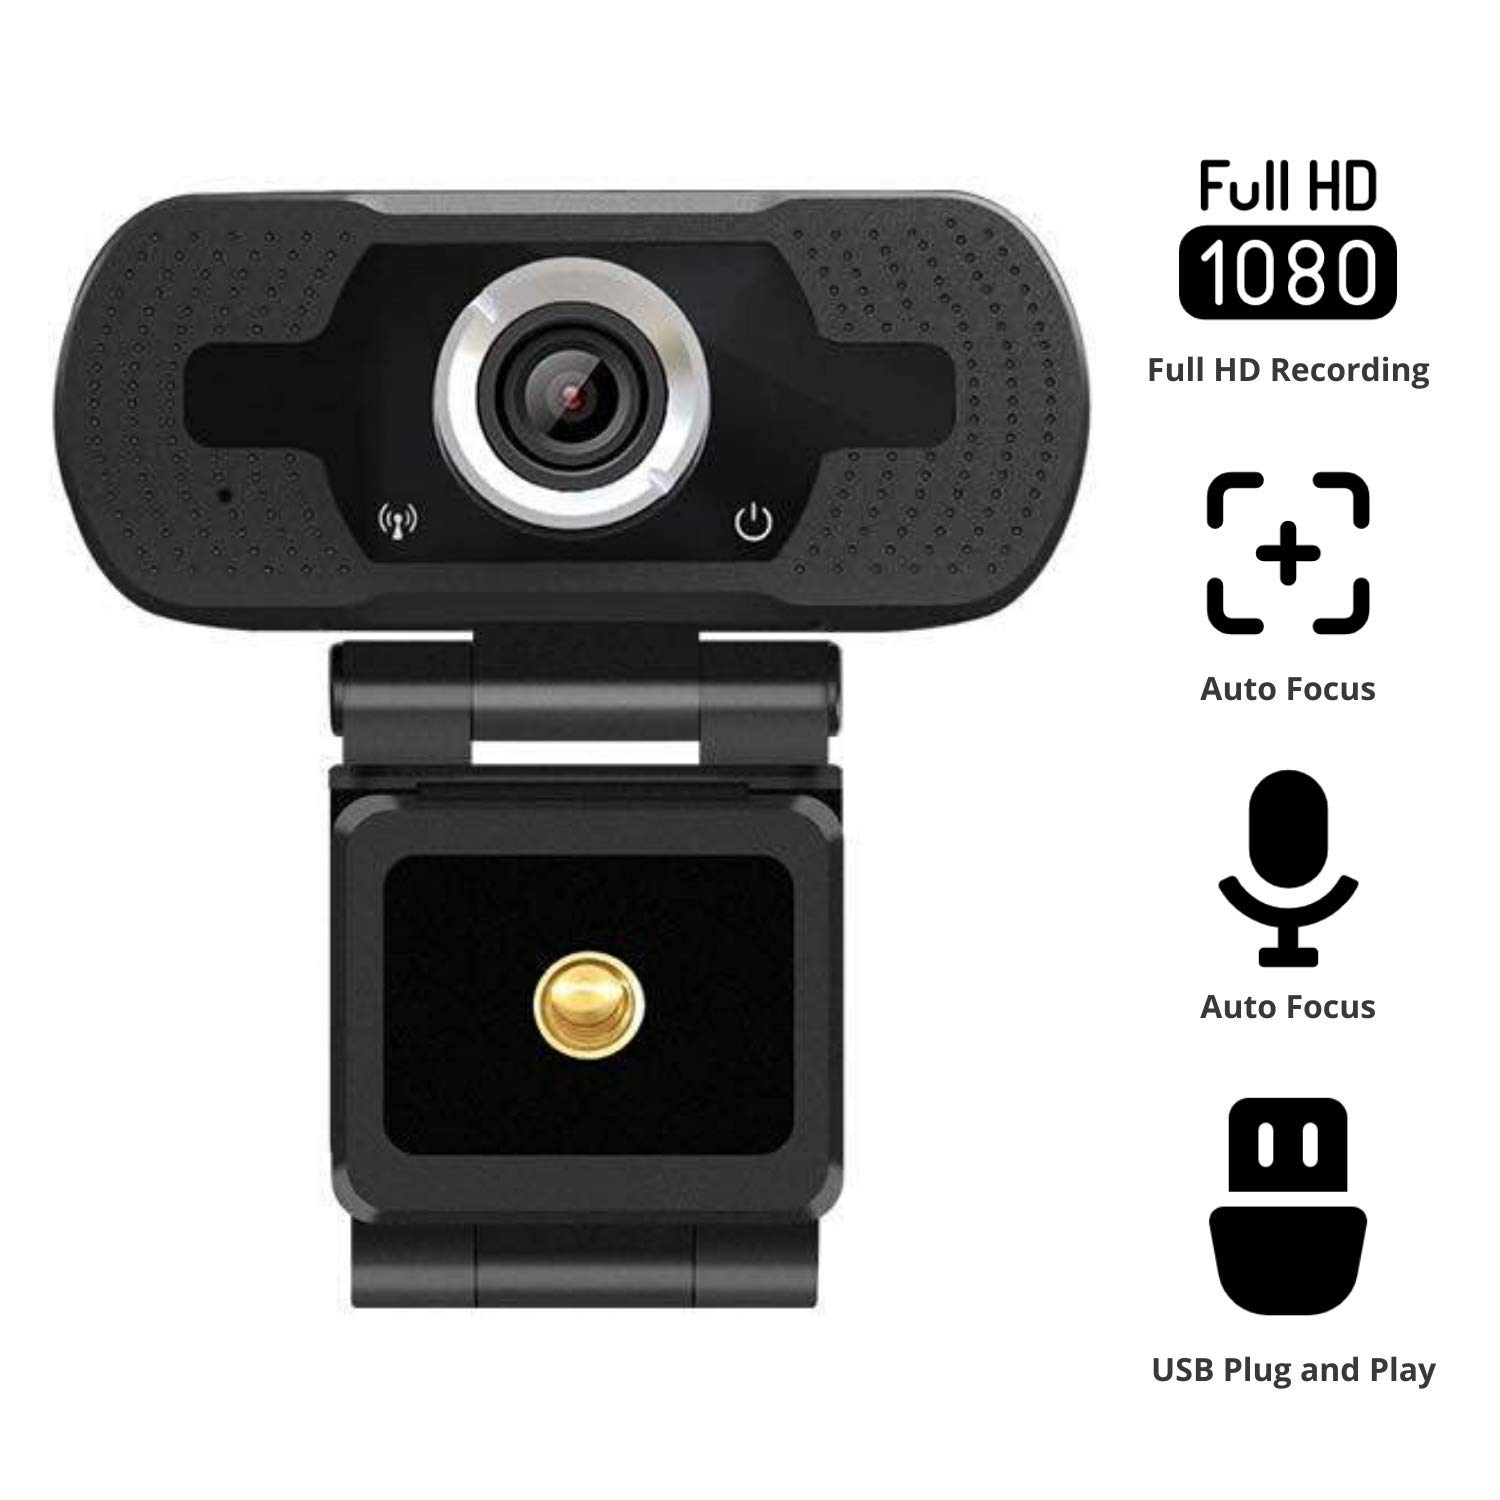 2020 NexiGo 1080P Webcam with Built-in Microphone, 110-degree Wide Angle HD Auto Focus, Dual Stereo Mics, Widescreen USB Camera for PC/Mac Laptop/Desktop Streaming Video Calling Recording Conferencing